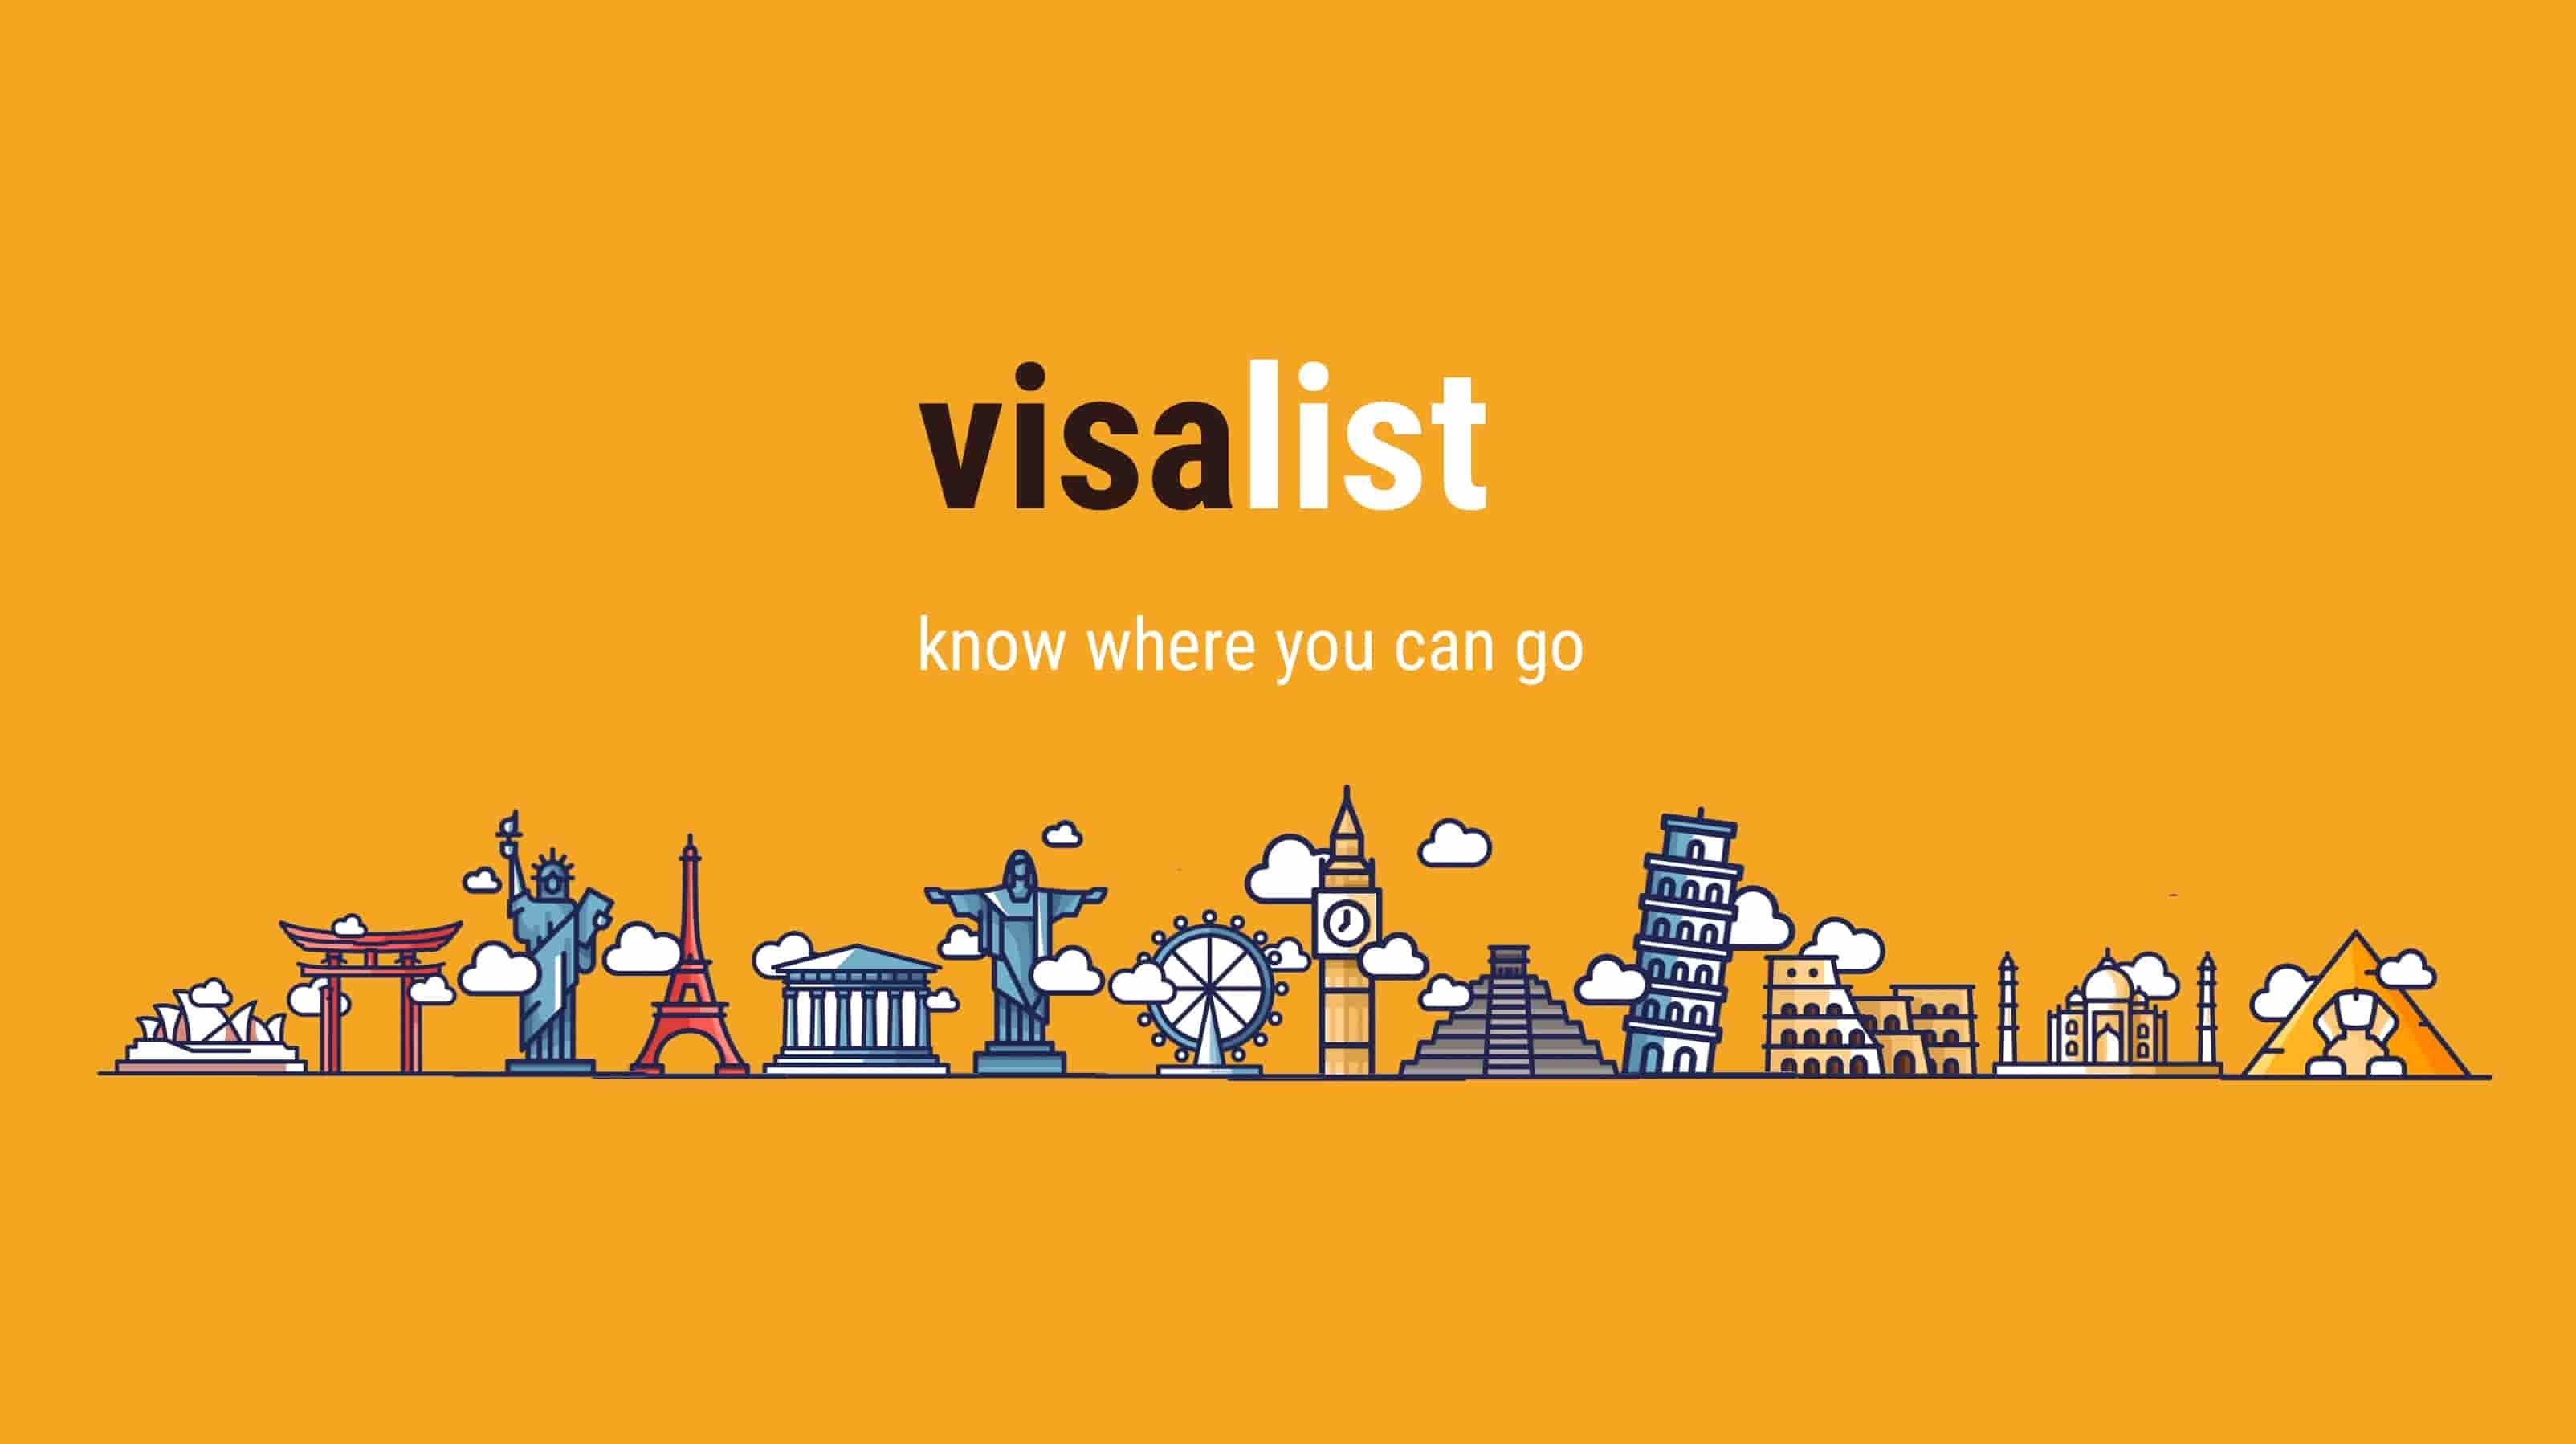 VisaList - Travel tension free without visa requirement research